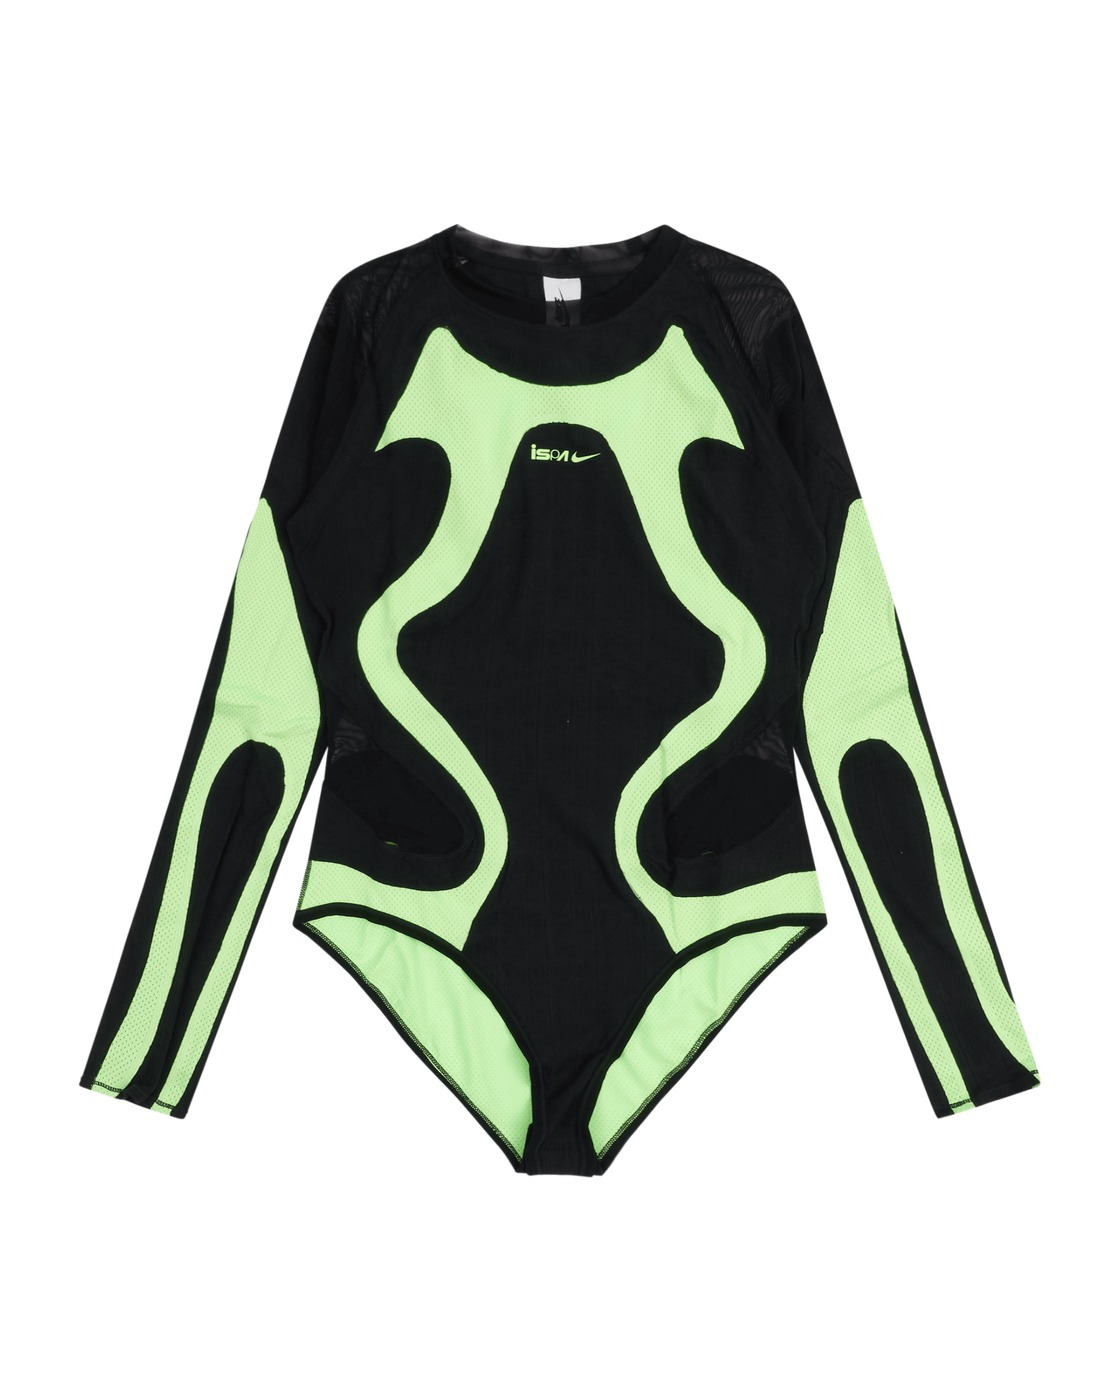 Photo: Nike Special Project Ispa Body Lime Blast/Black